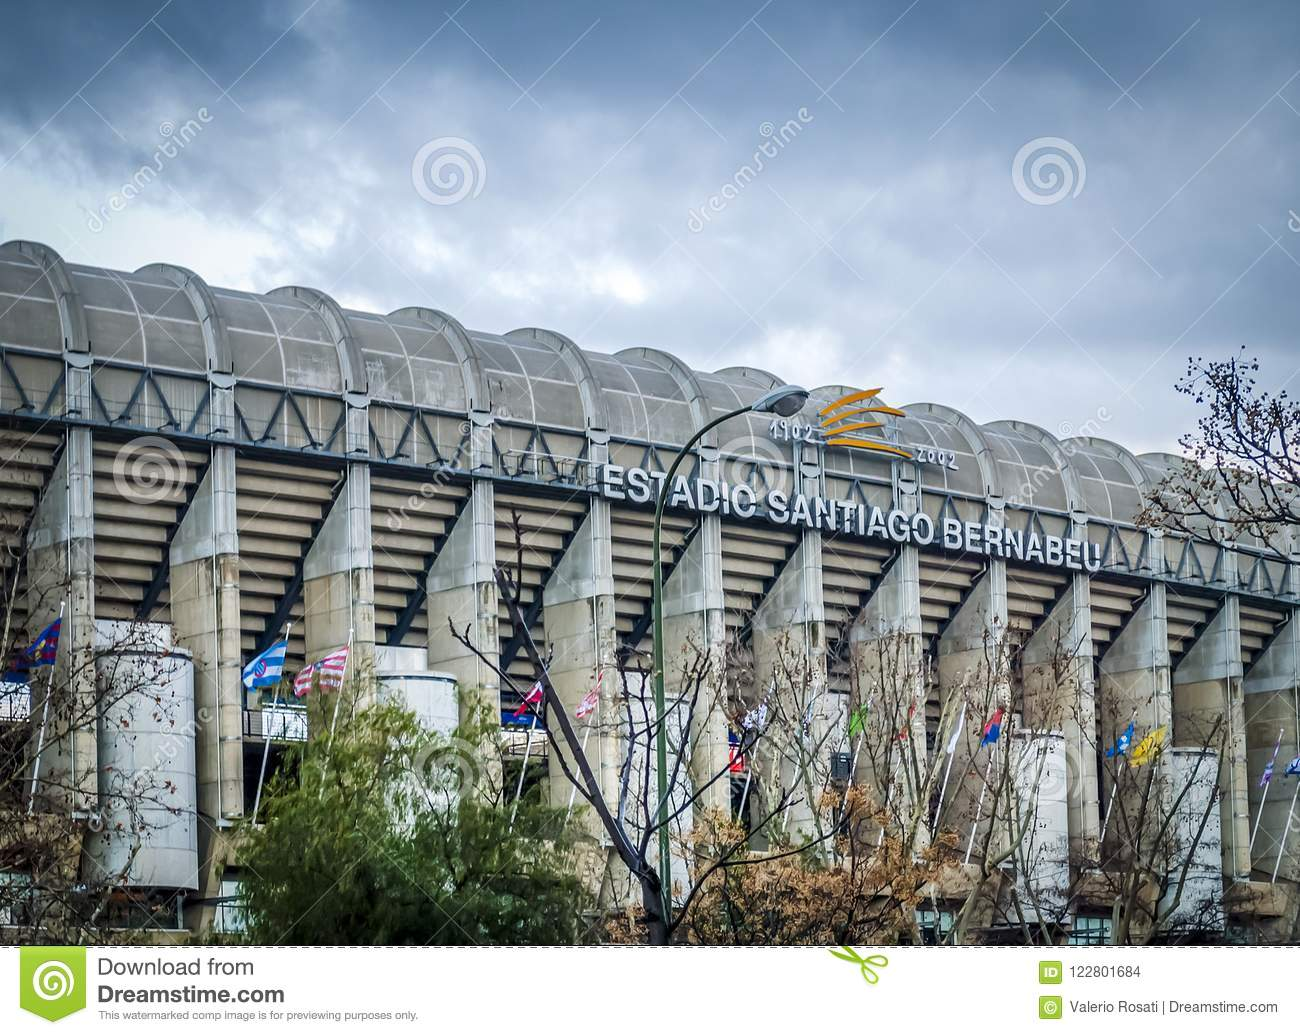 Exterior of the Santiago Bernabeu stadium in Madrid, the home of Real Madrid soccer team